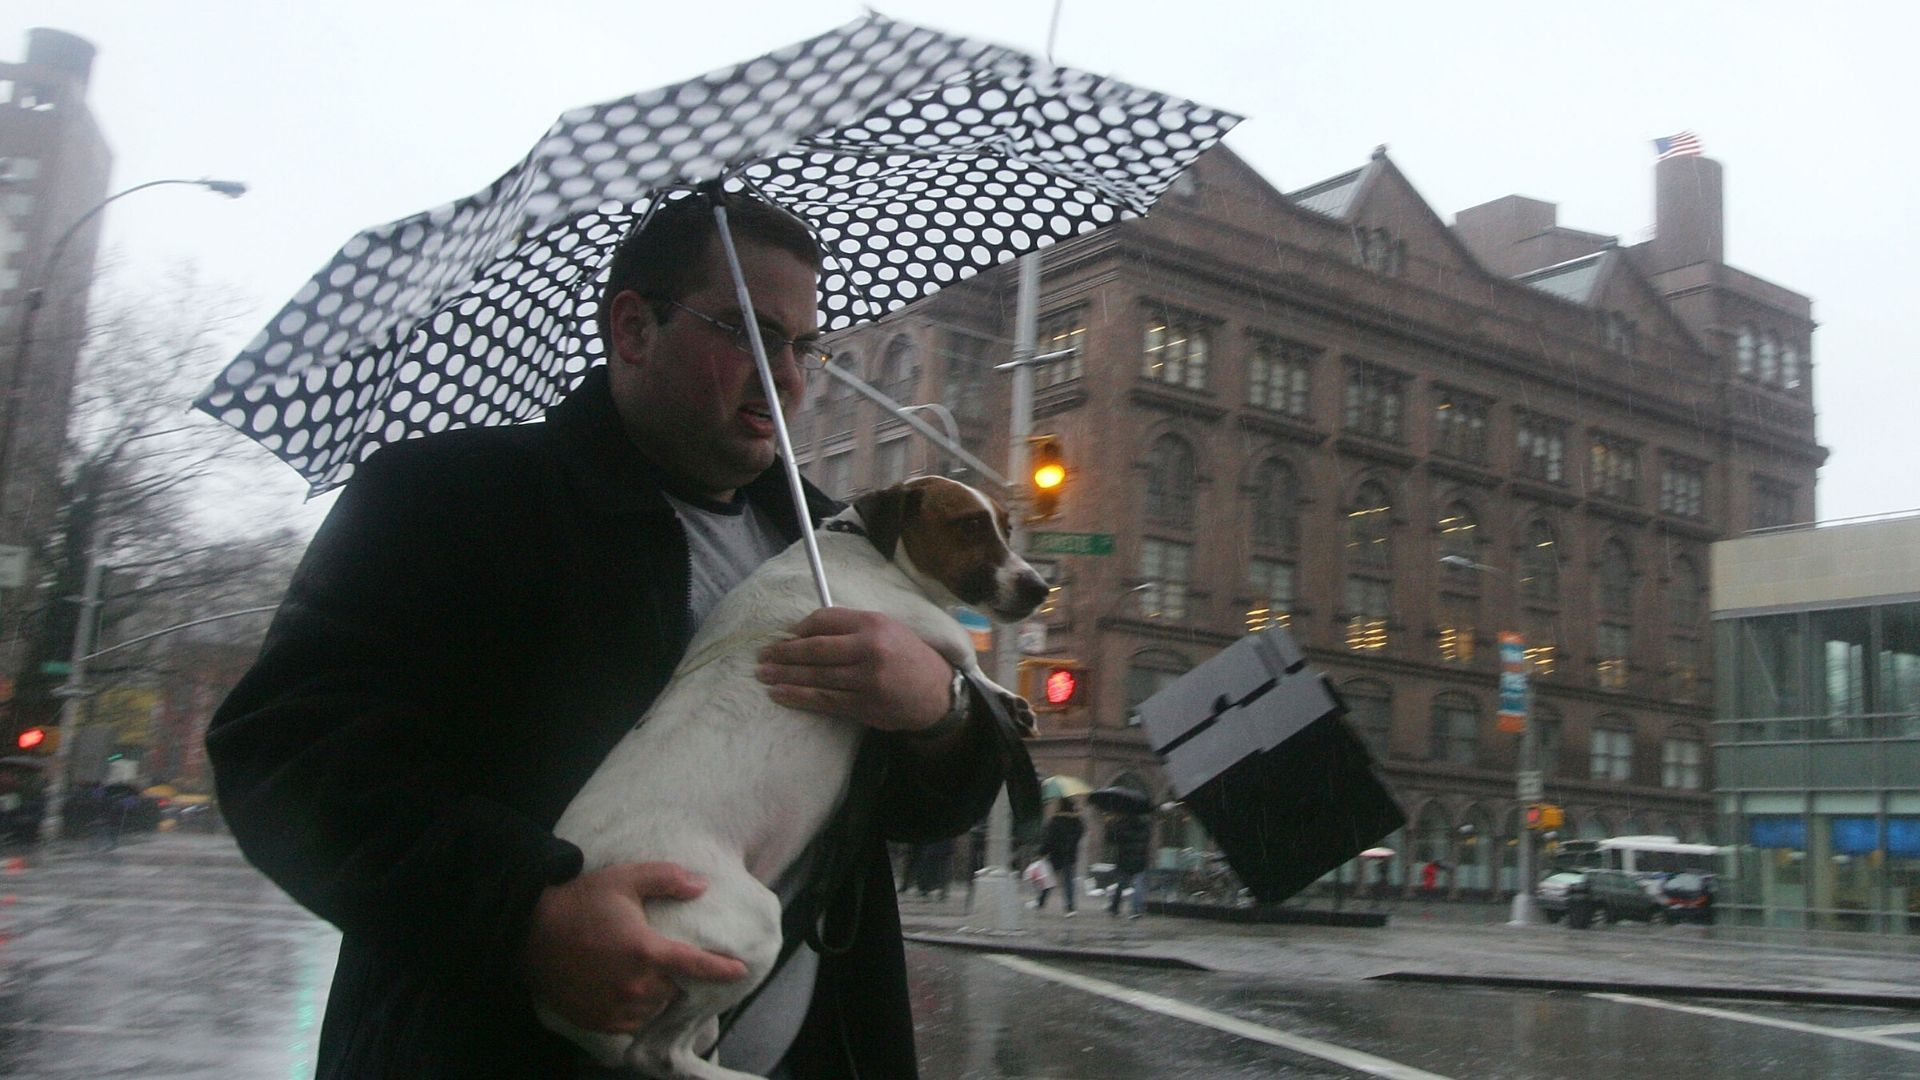 Dog in the rain under umbrella